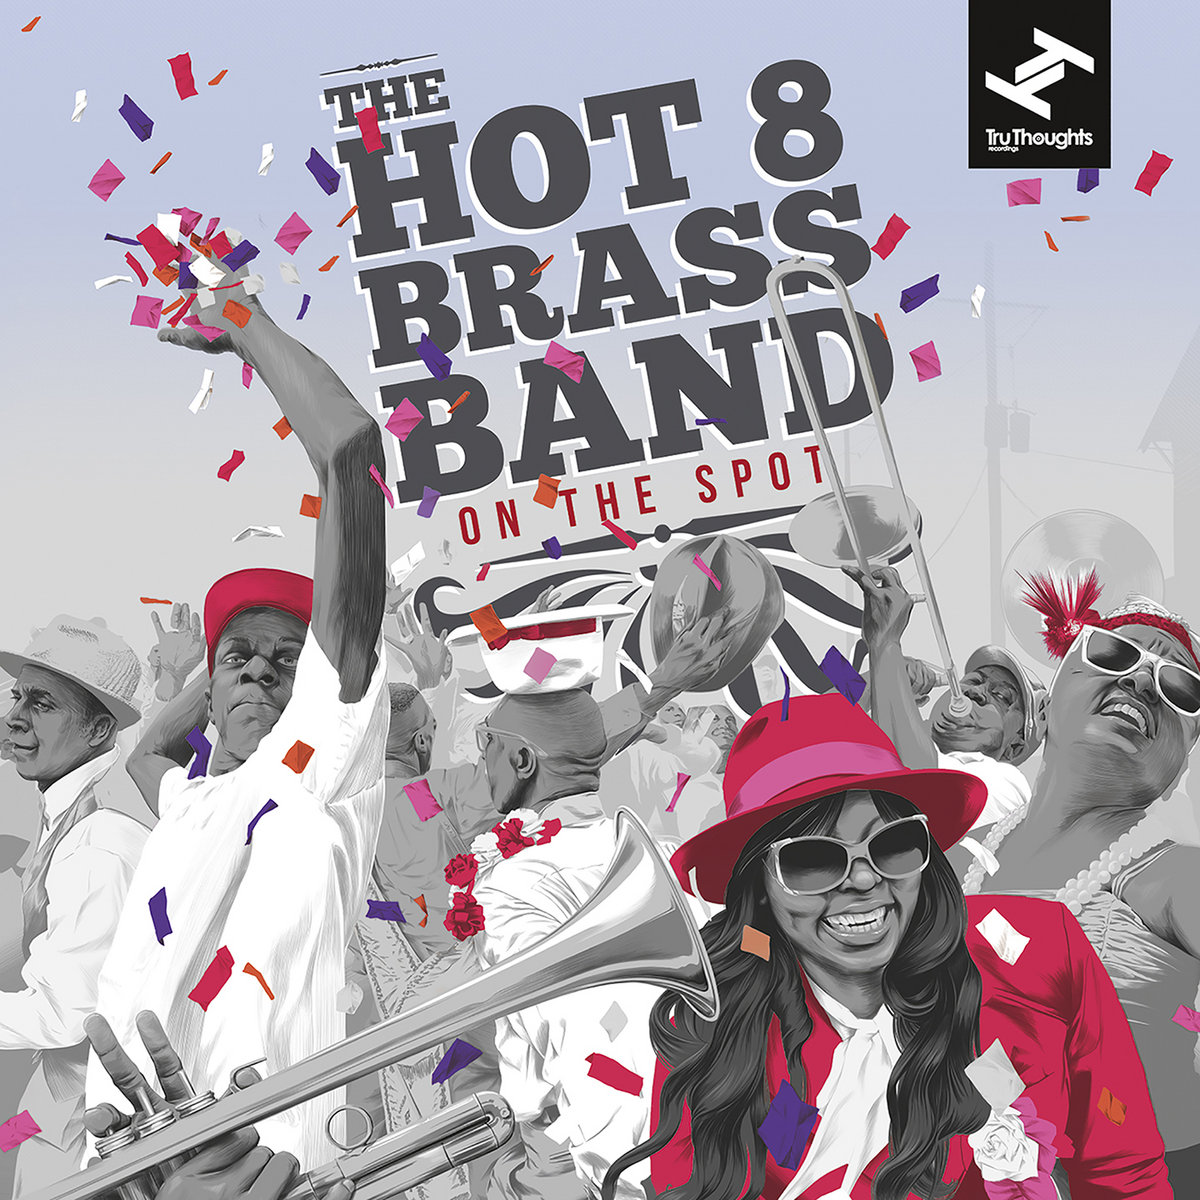 Hot 8 brass band sexual healing mp3